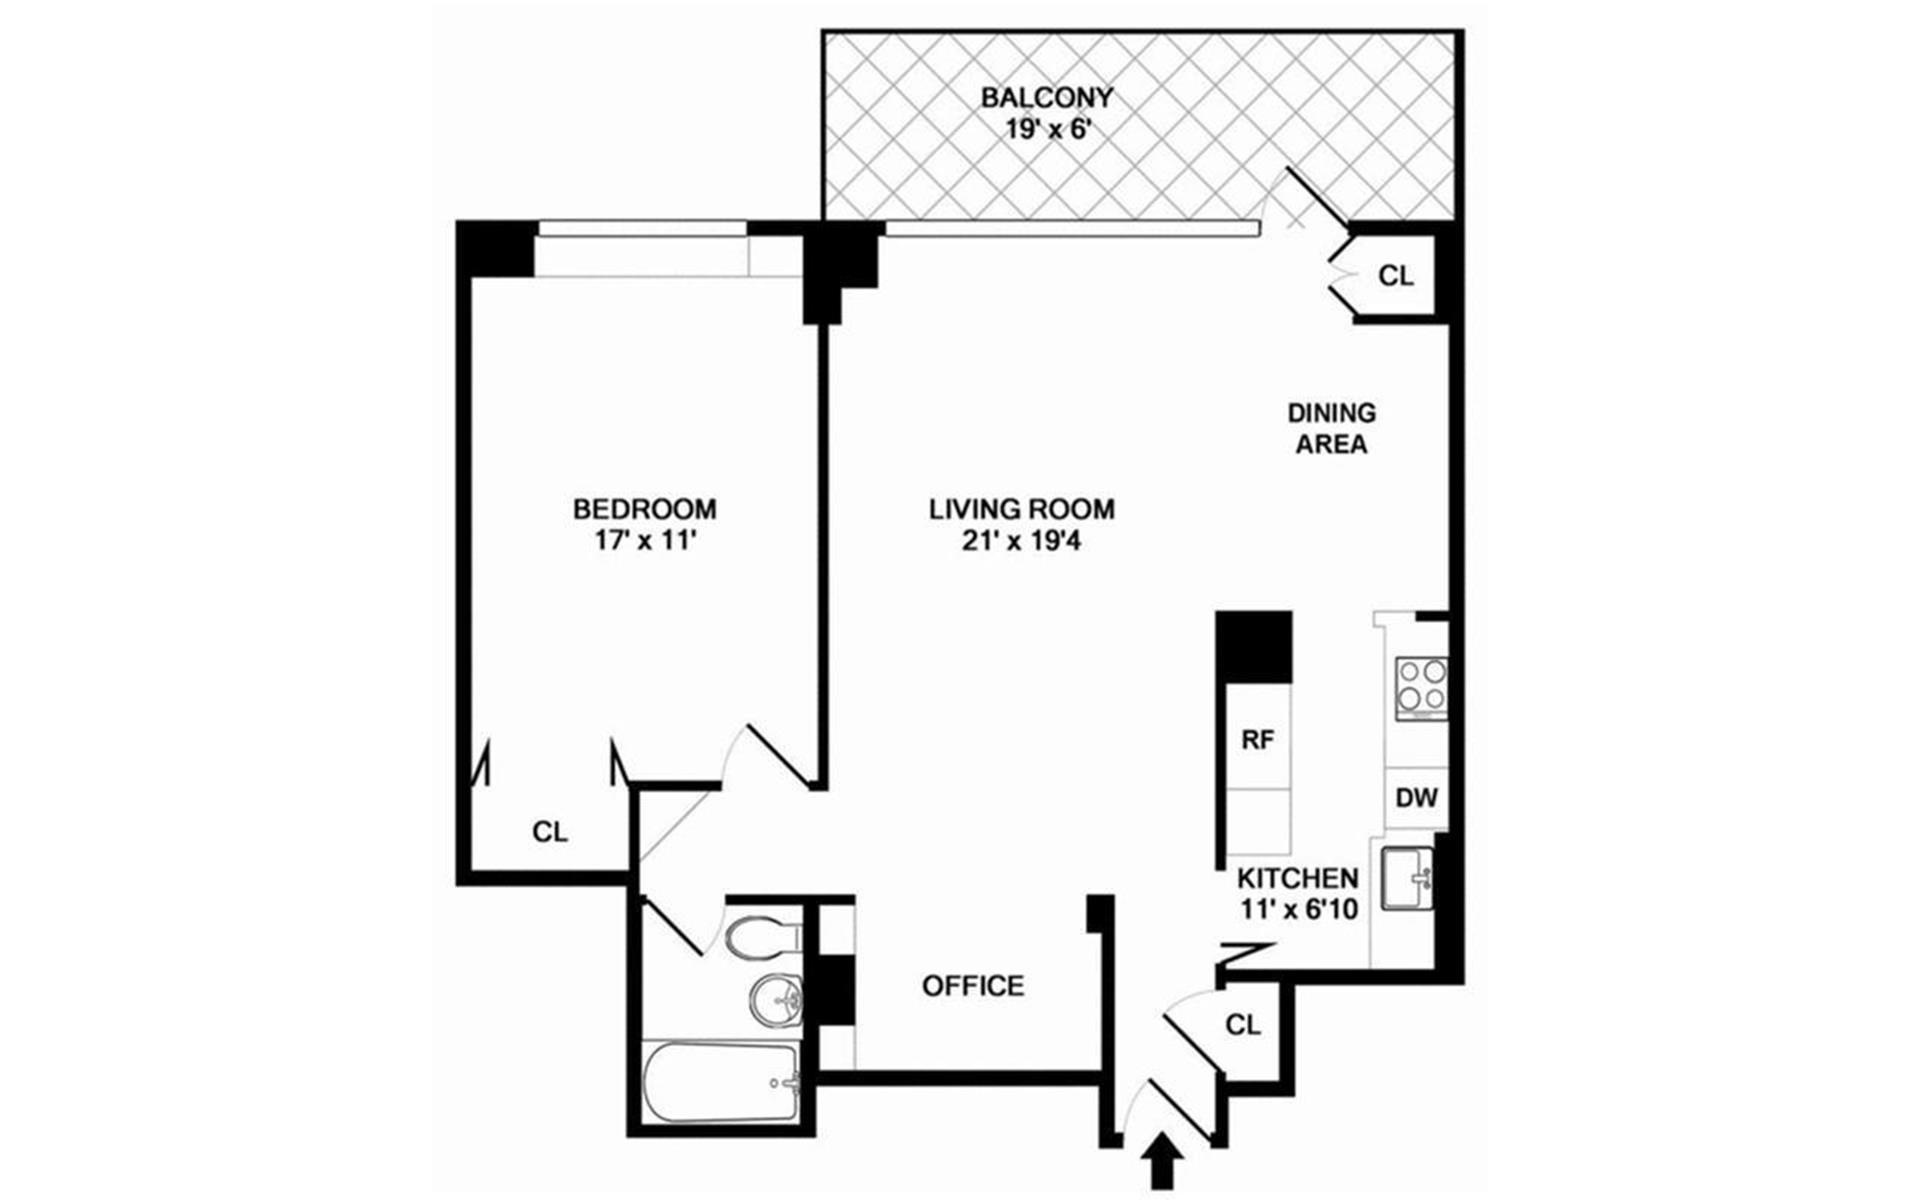 Floor plan of 400 CPW CONDOMINIUM, 400 Central Park West, 18A - Upper West Side, New York